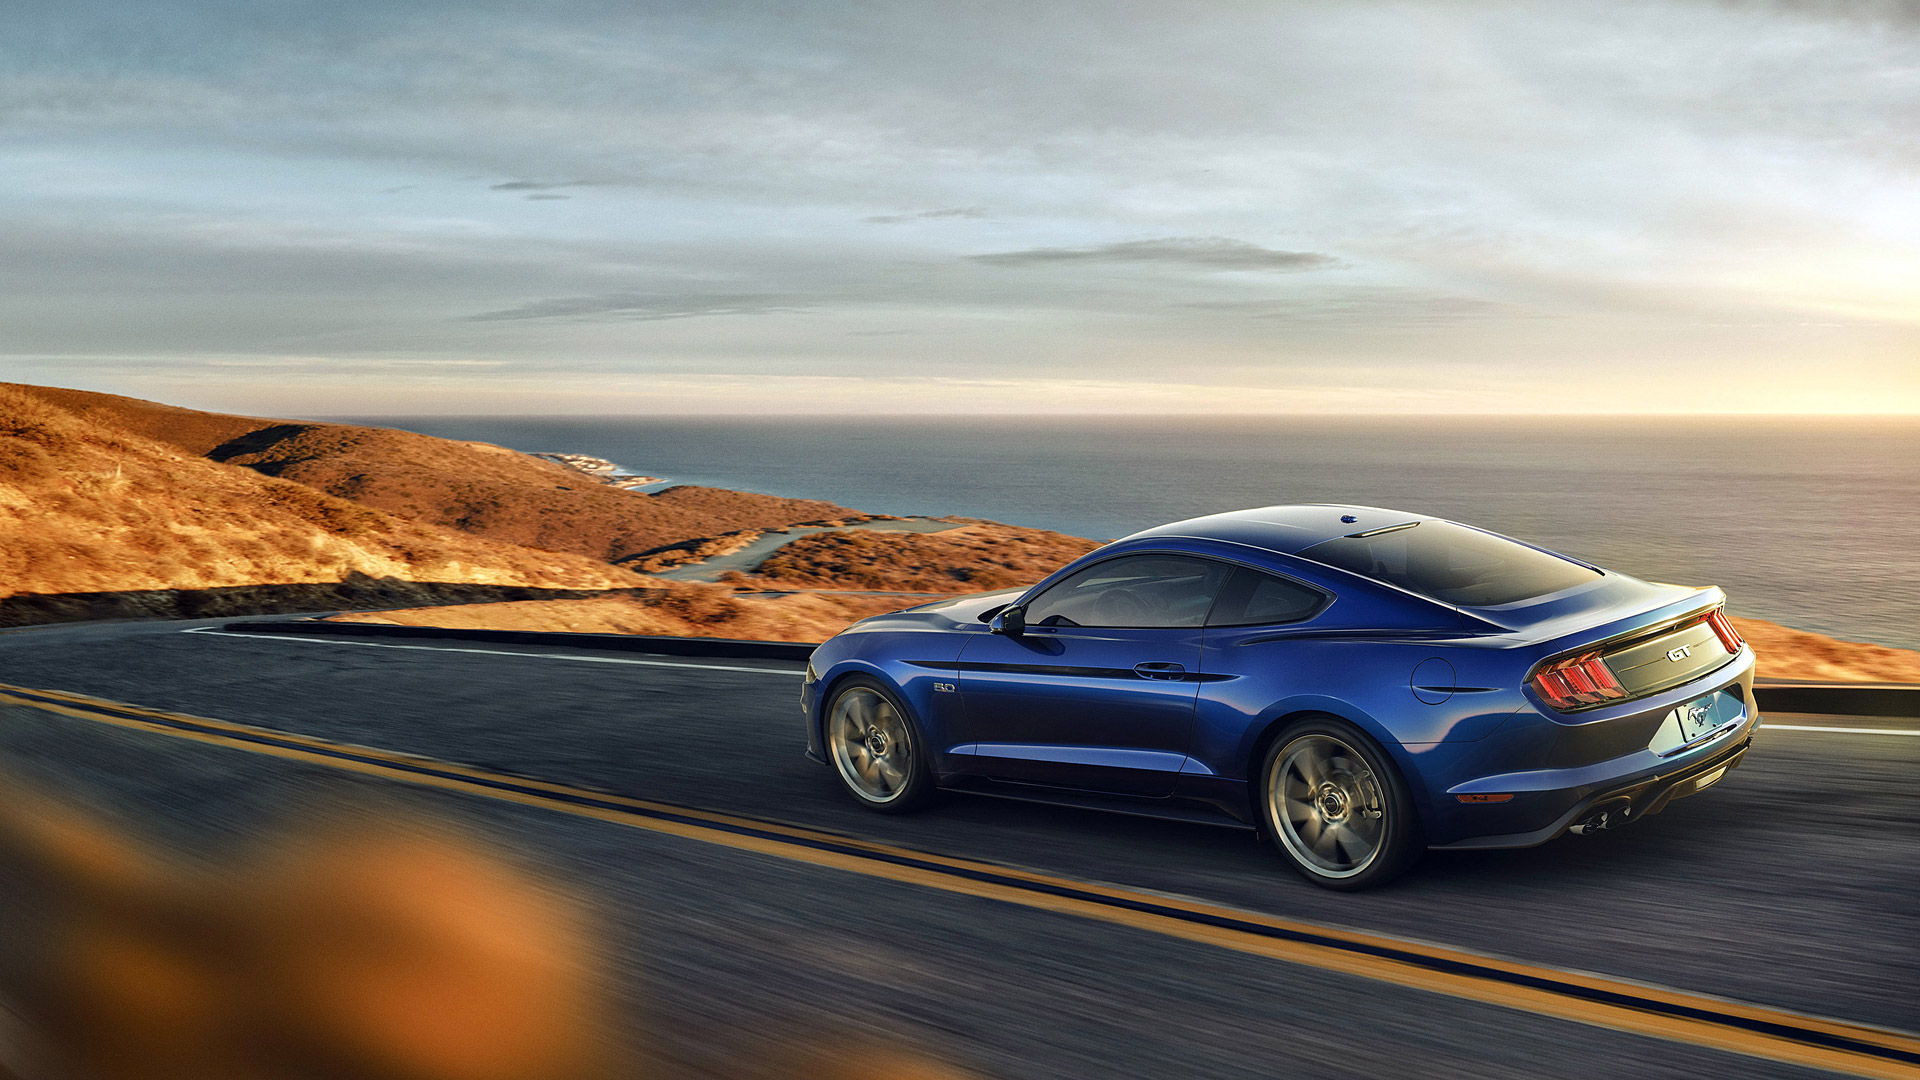 1920x1080 - Ford Mustang GT Wallpapers 10